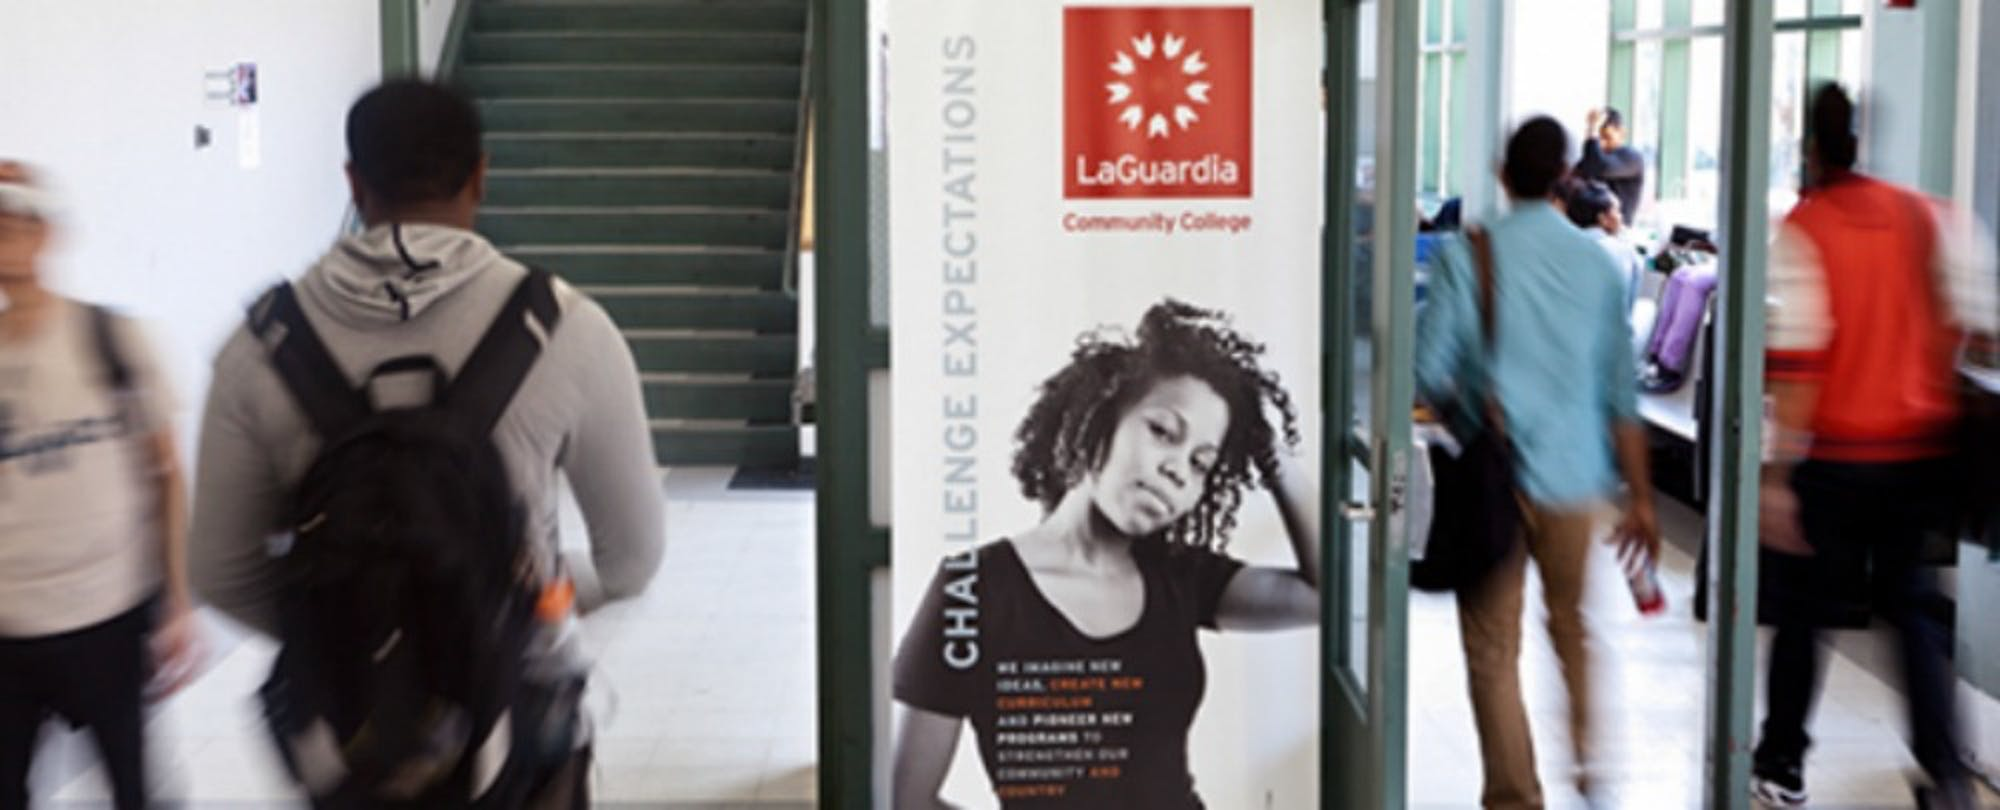 LaGuardia Community College: Where Business and Tech Education Meet